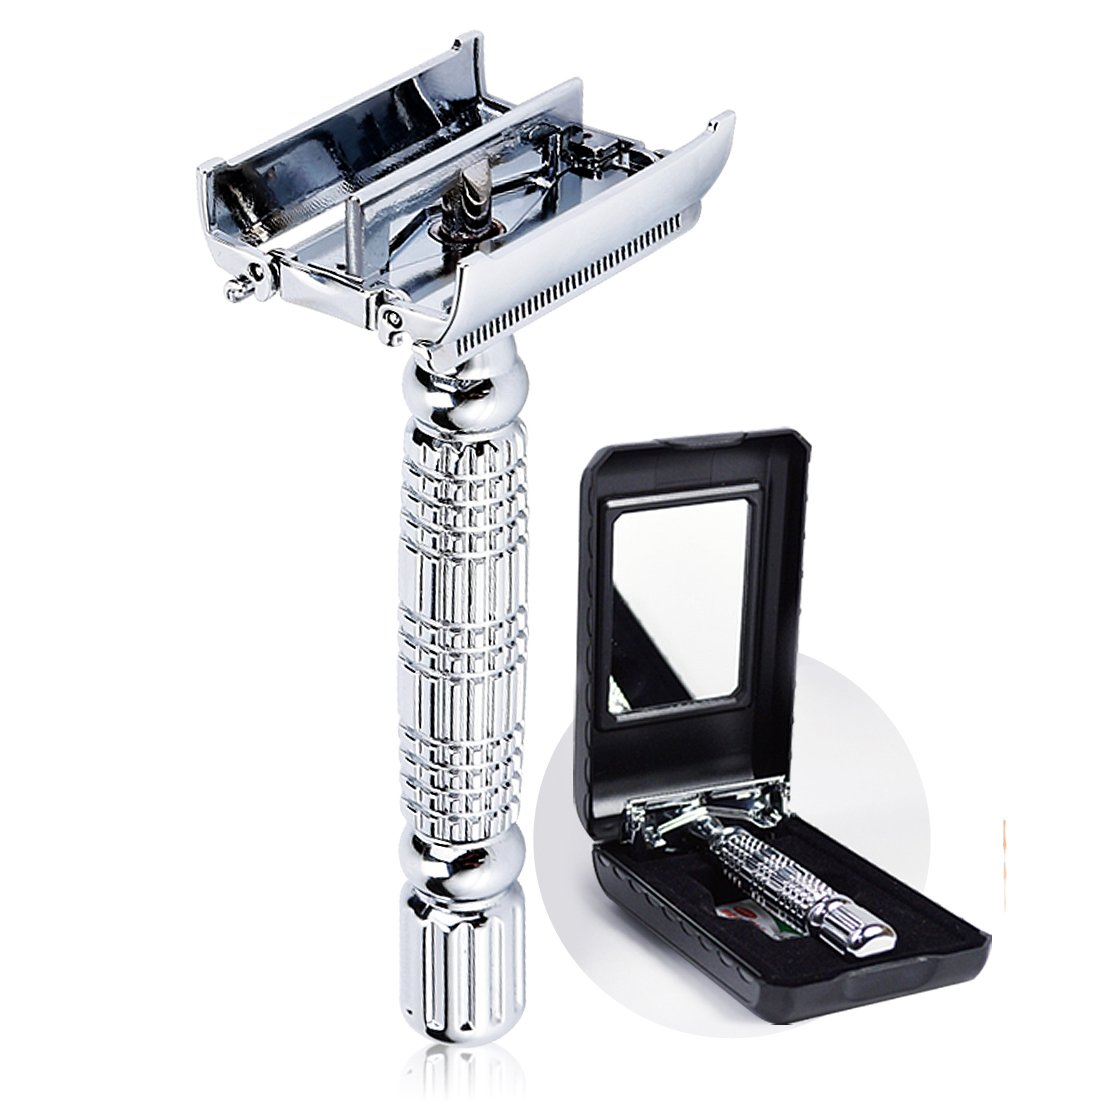 BAILI Twin-bladed Double Edge Safety Razor Shaver Classic Men's Twist Butterfly Open Head with 1 Platinum Blade 1 Mirrored Travel Case, Silver, BD179